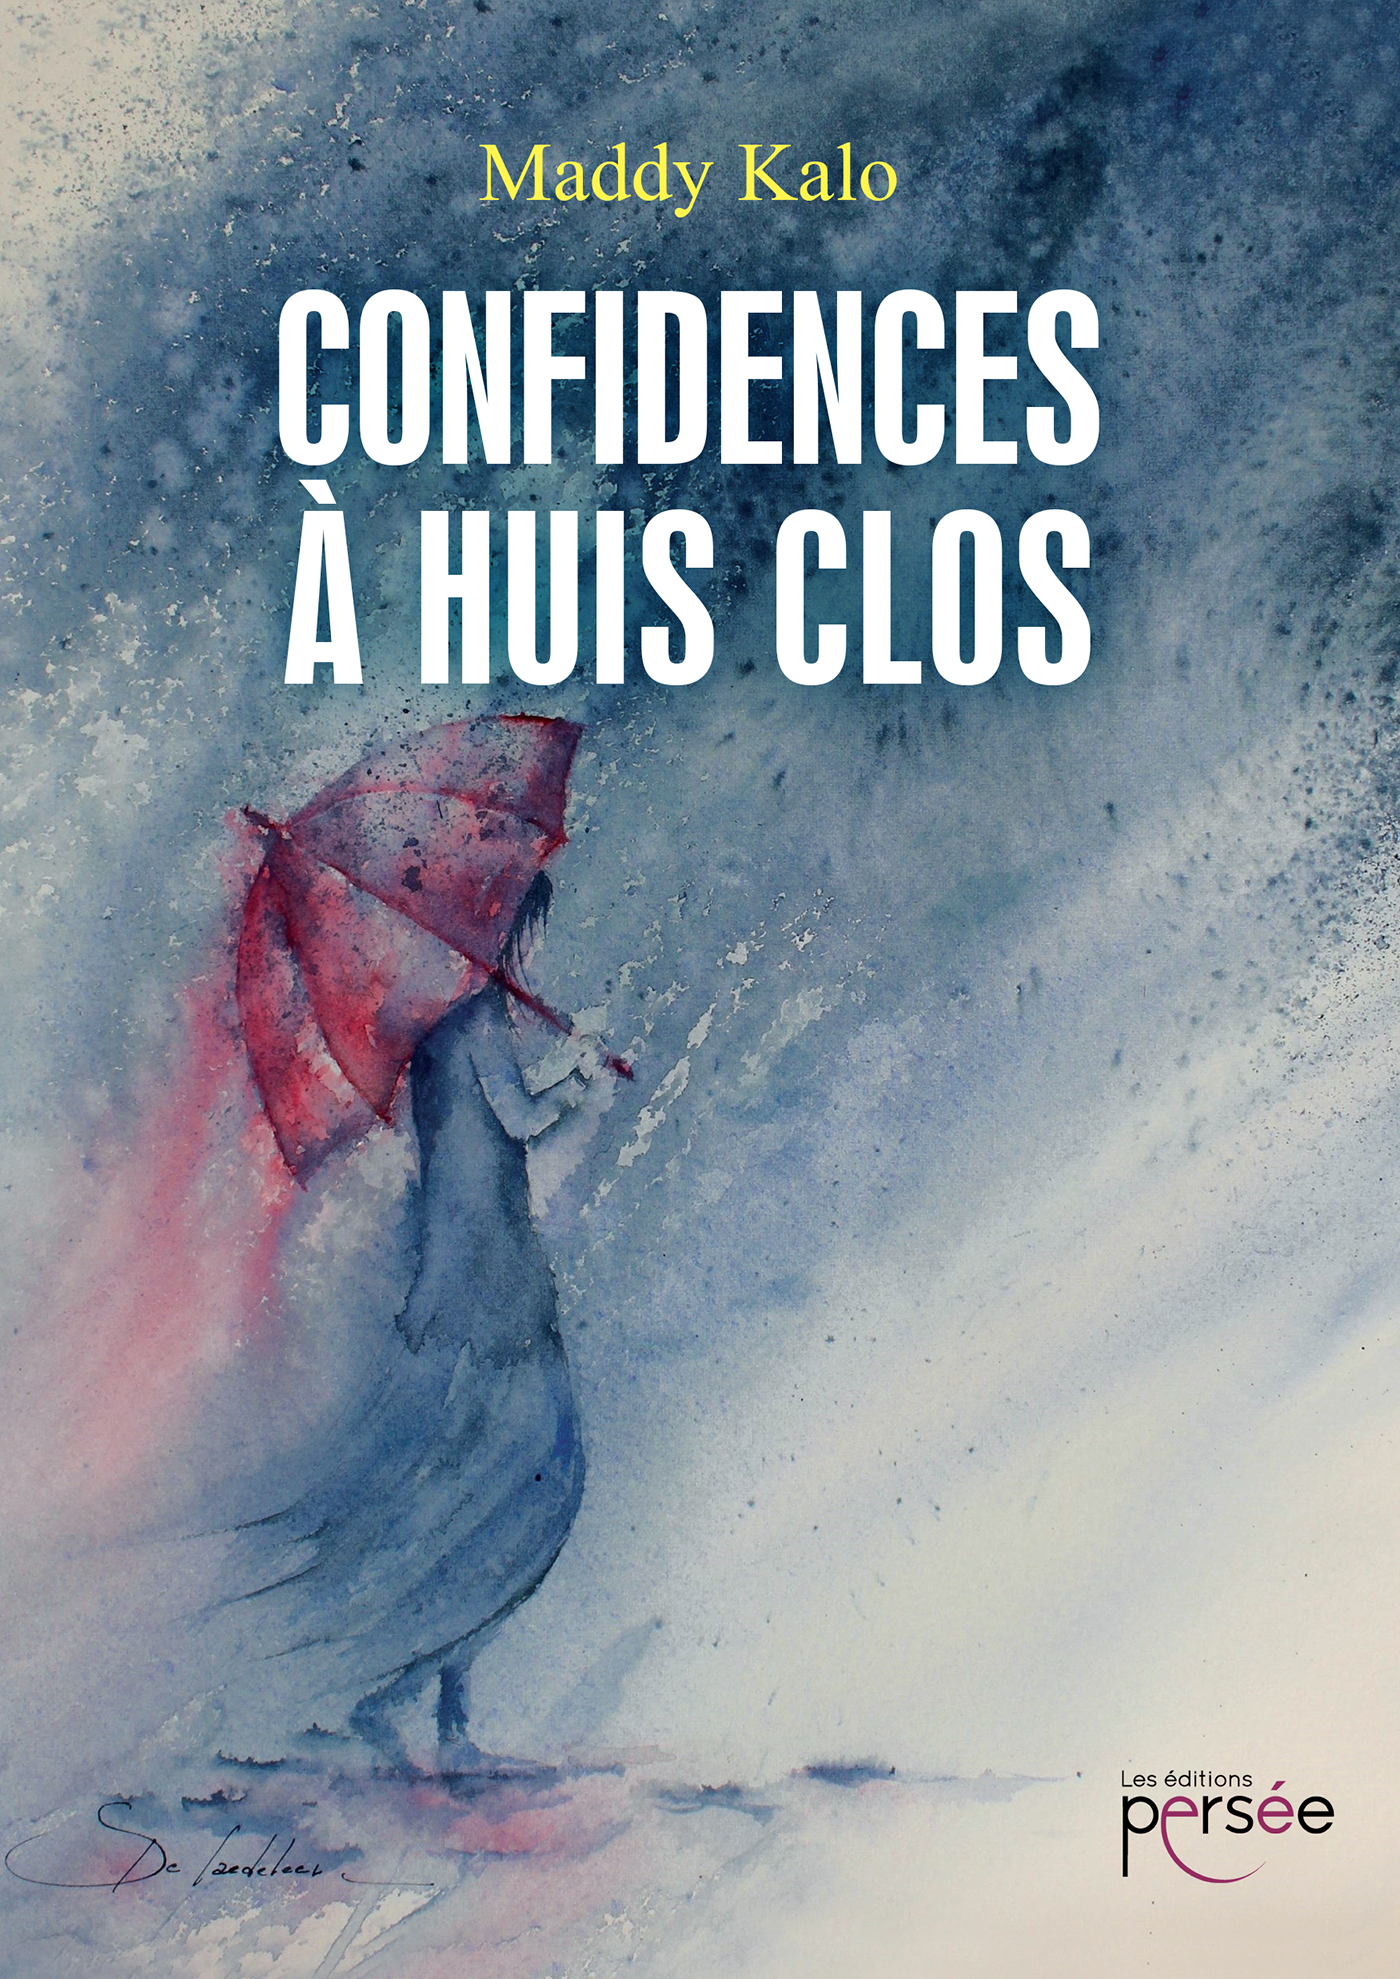 Confidences à huis clos